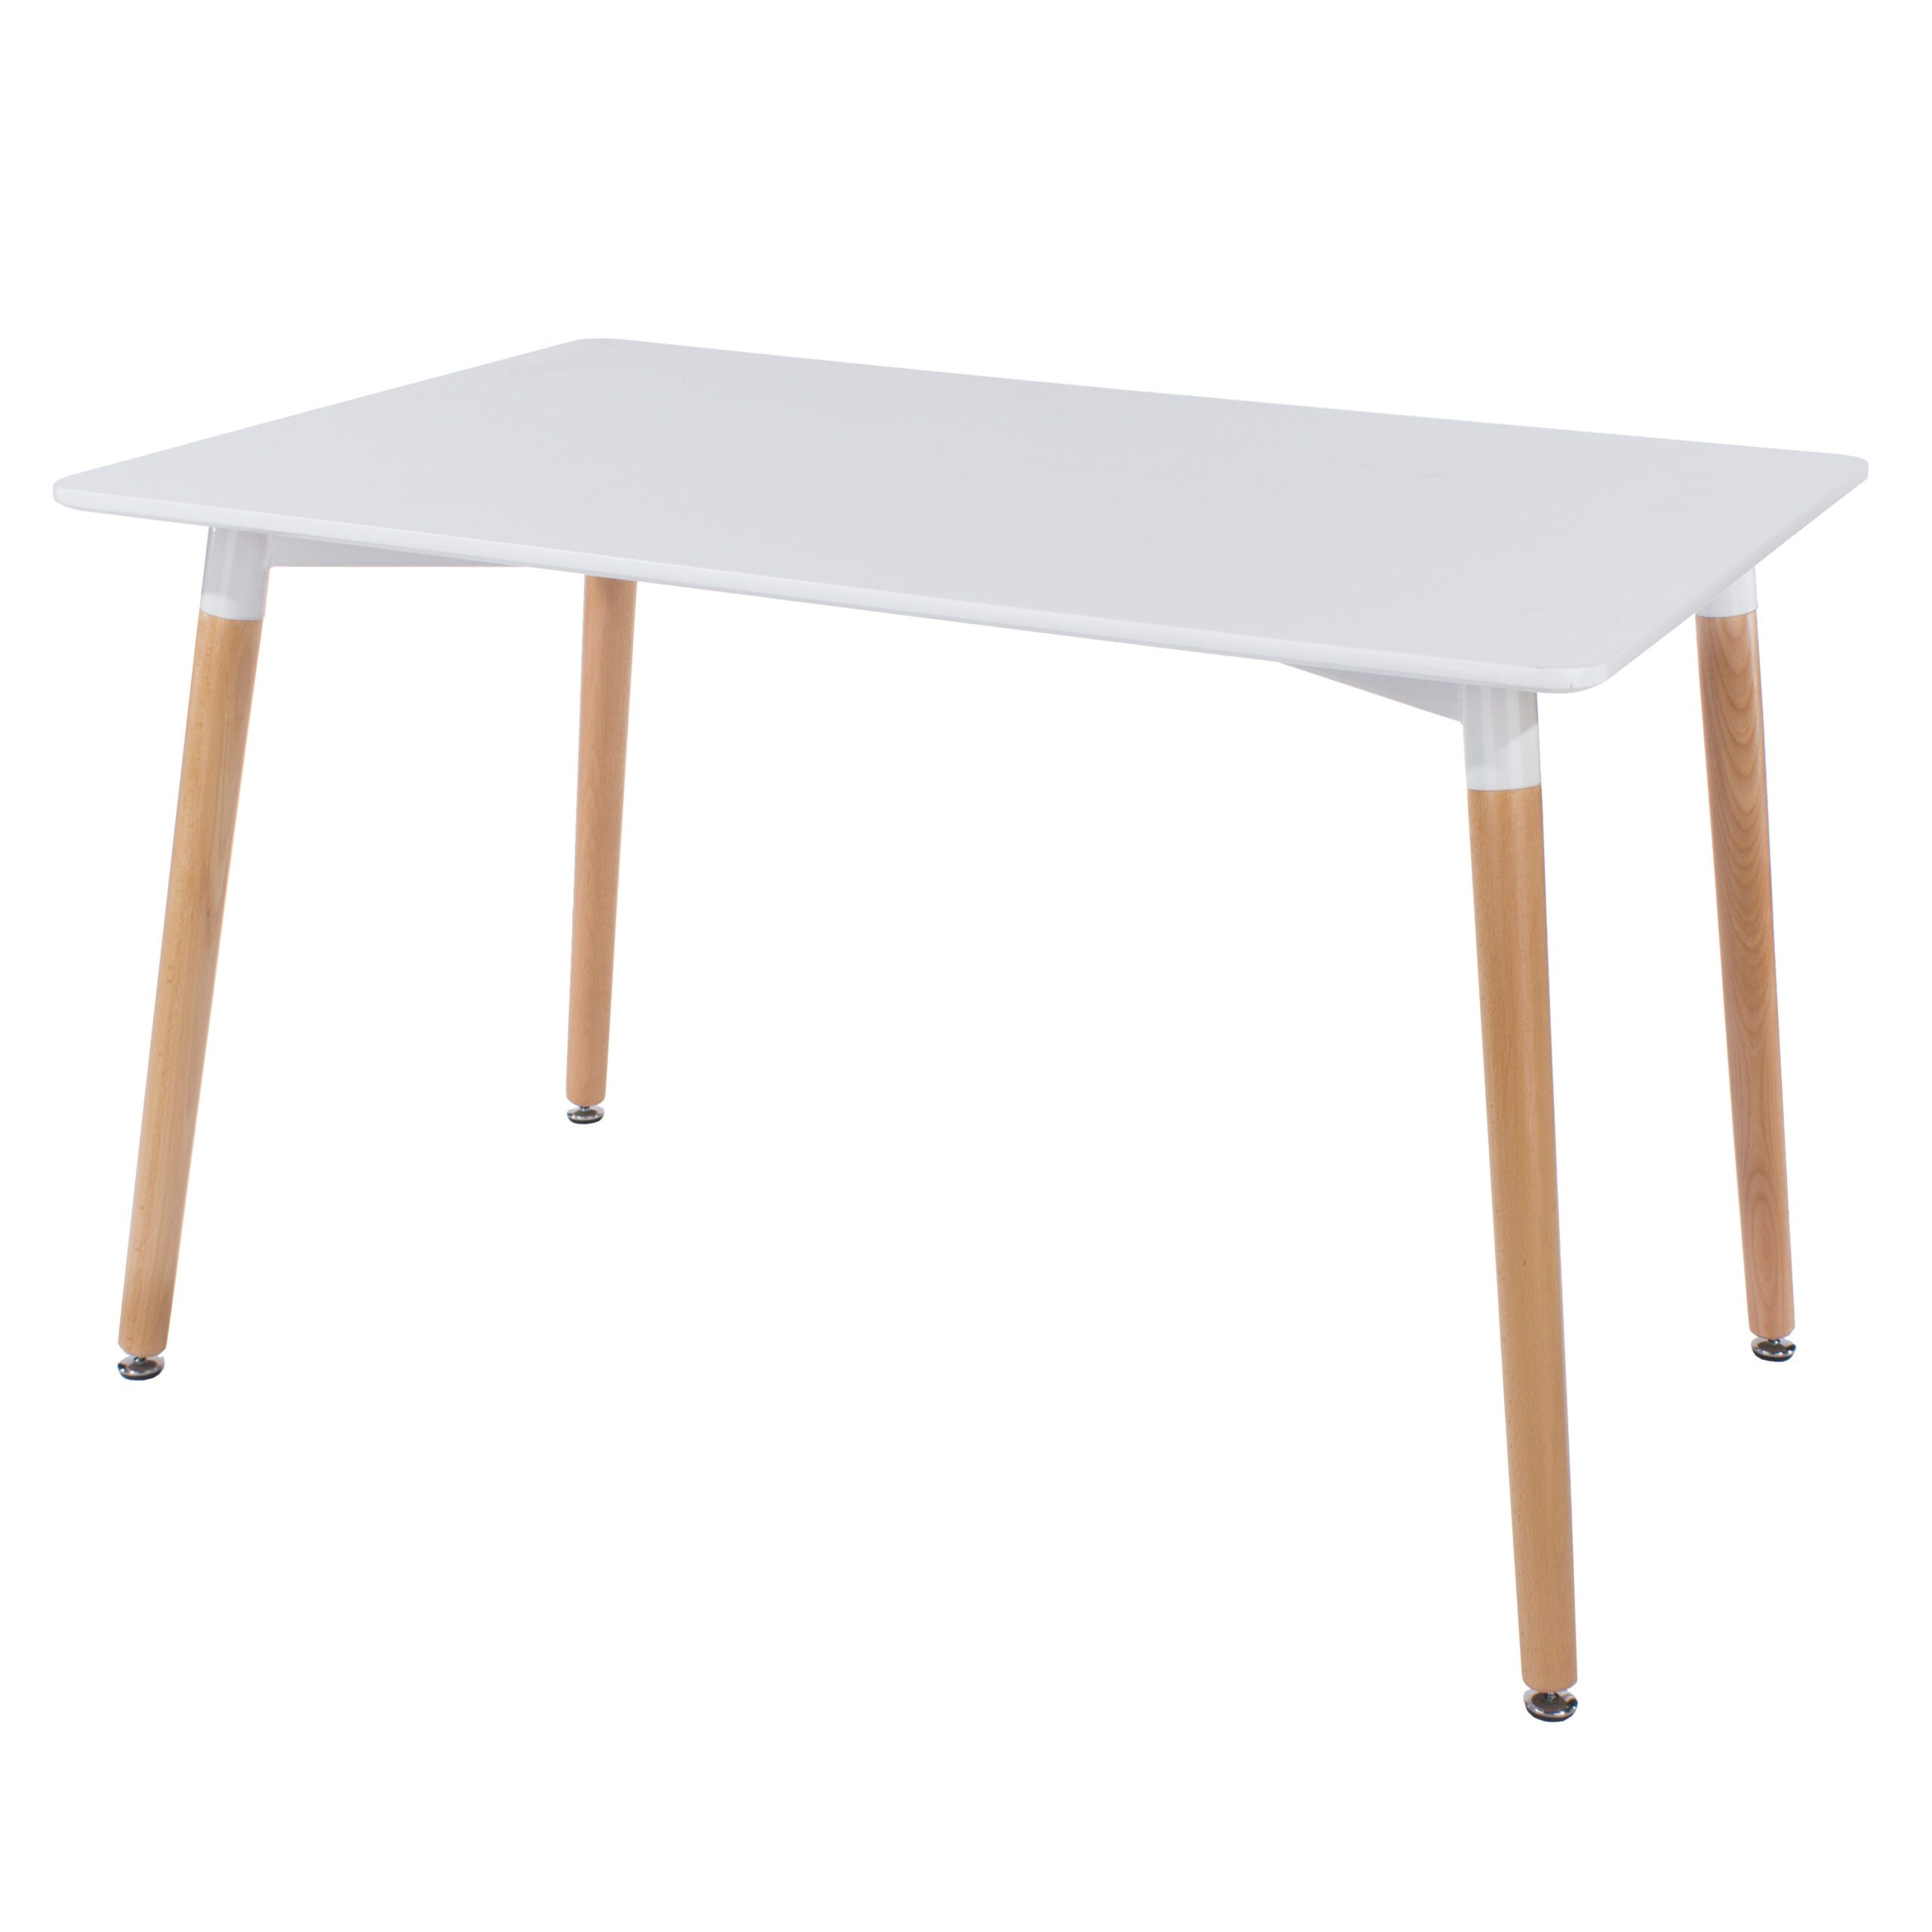 Penny rectangular table with wooden legs